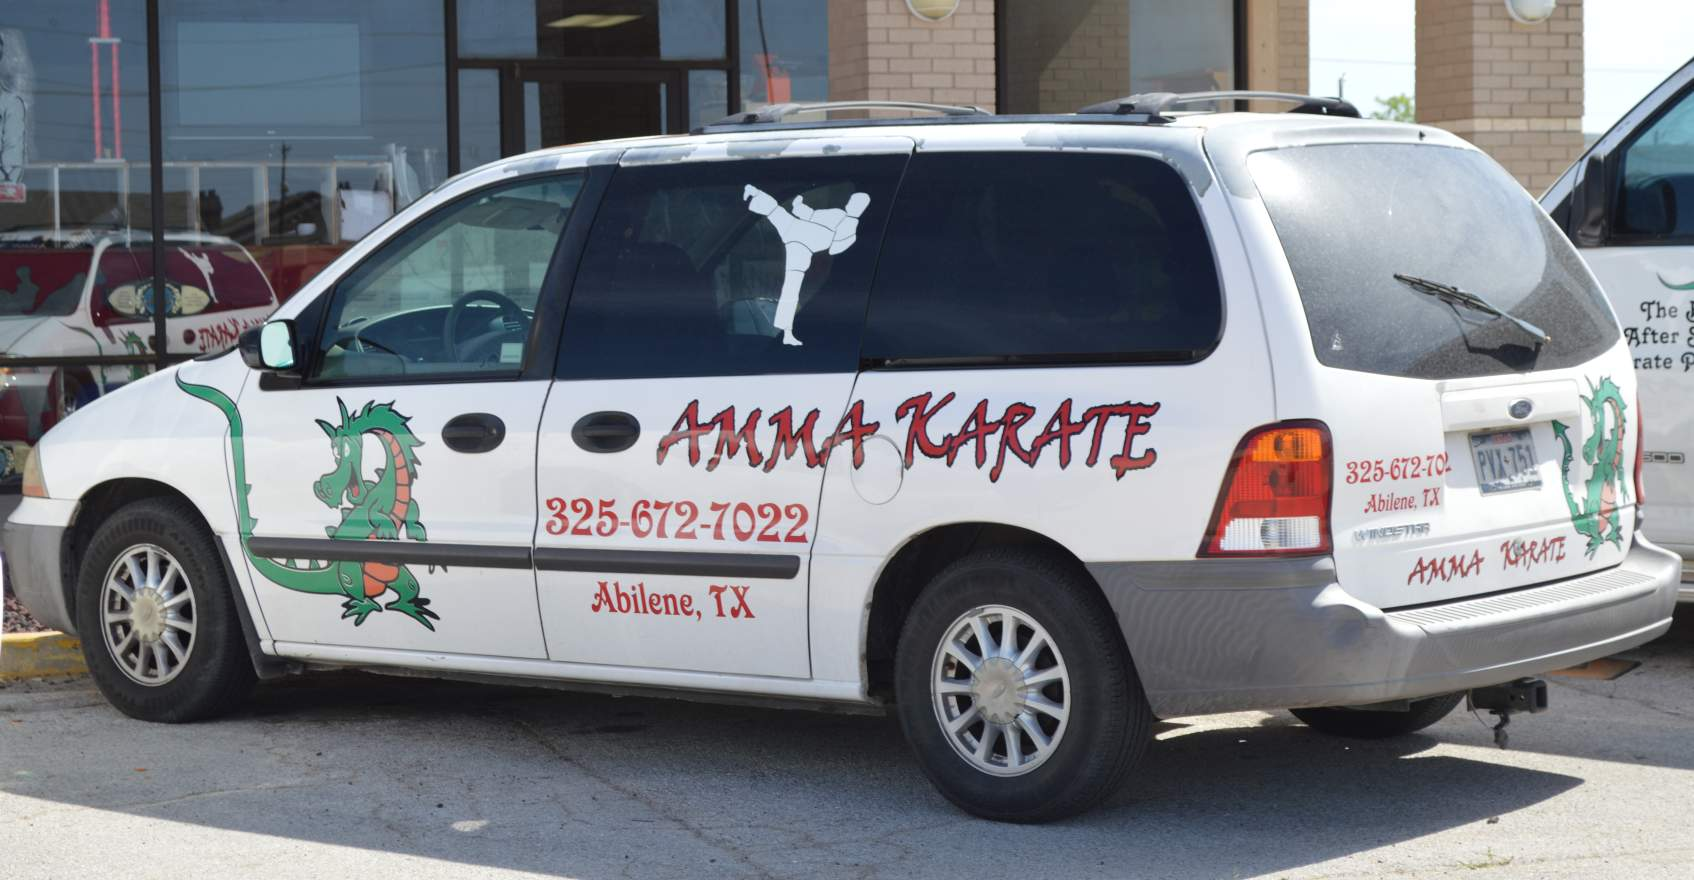 afterschool karate program transportation